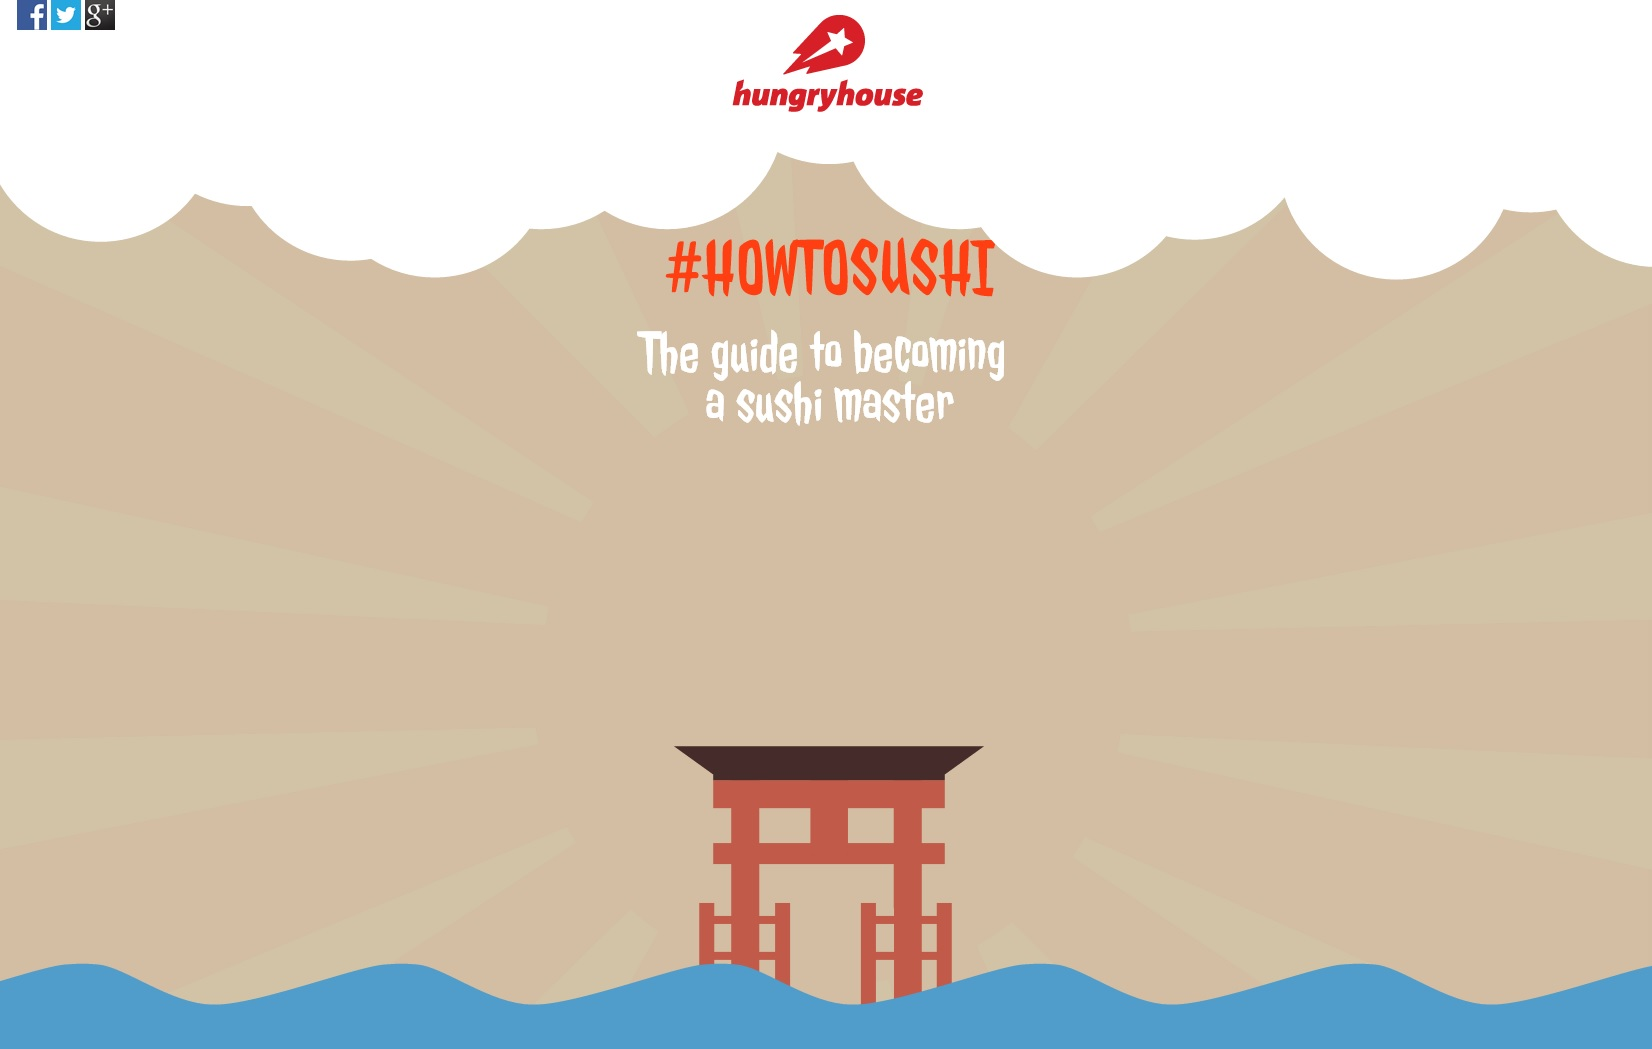 sushi guide by hungryhouse